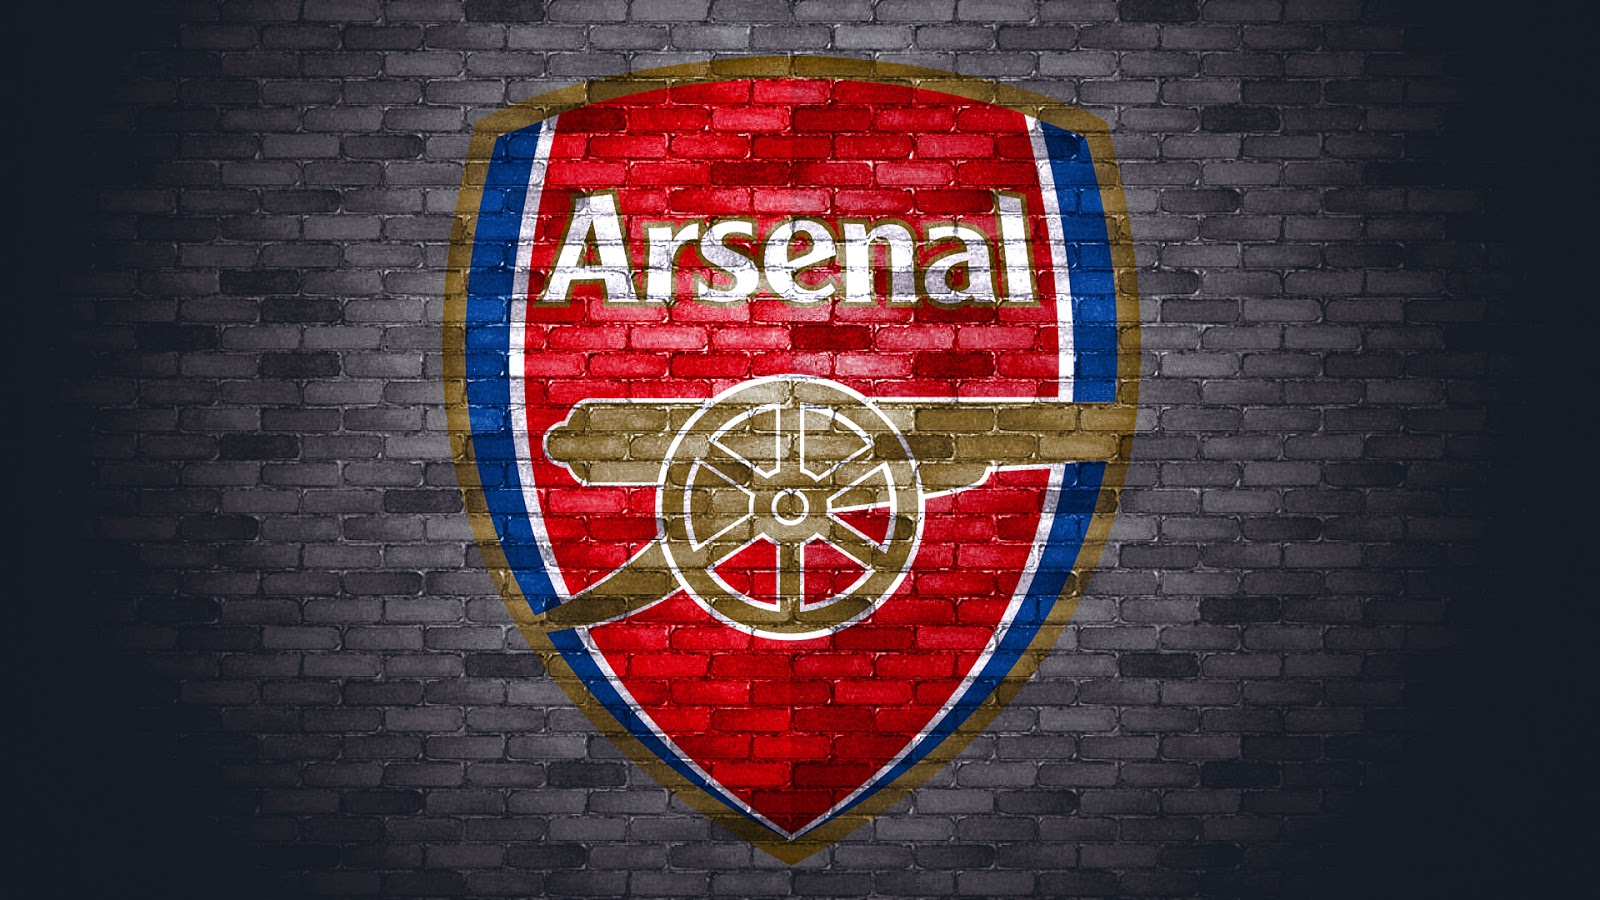 75 ] Arsenal Fc Wallpaper On WallpaperSafari